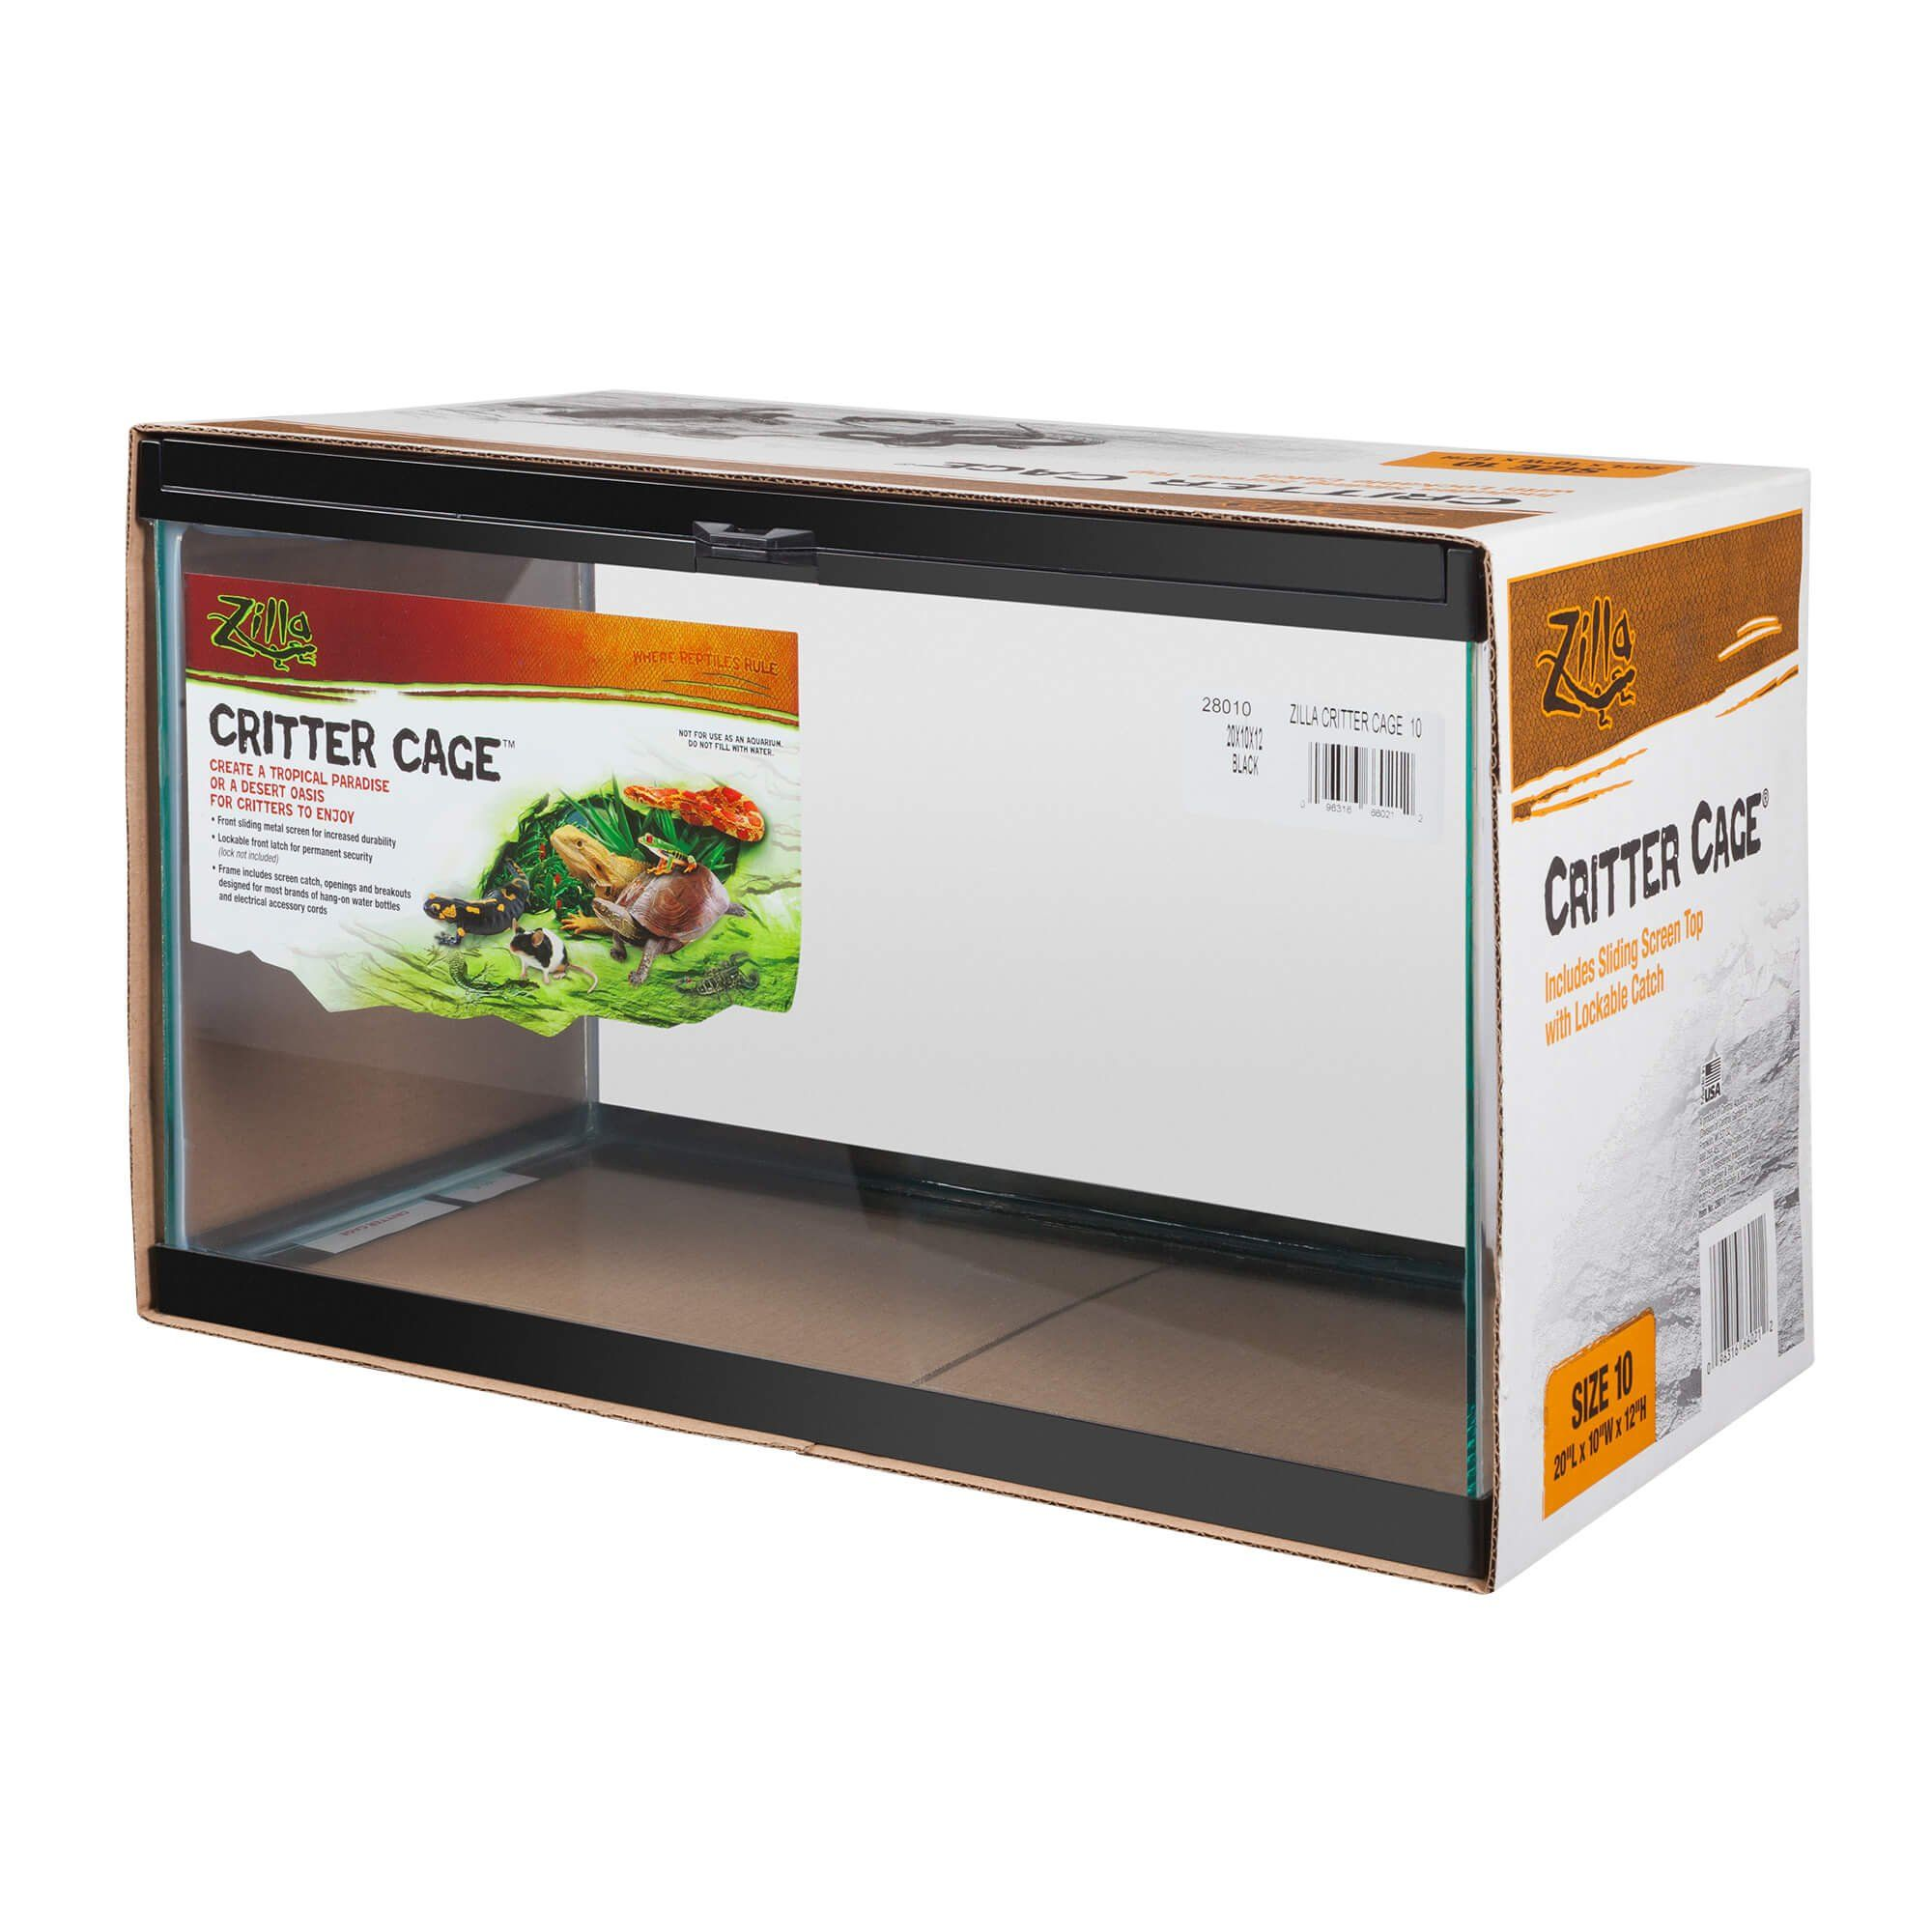 Zilla Critter Cage for Reptiles, 10 gallons  | Petco | pets